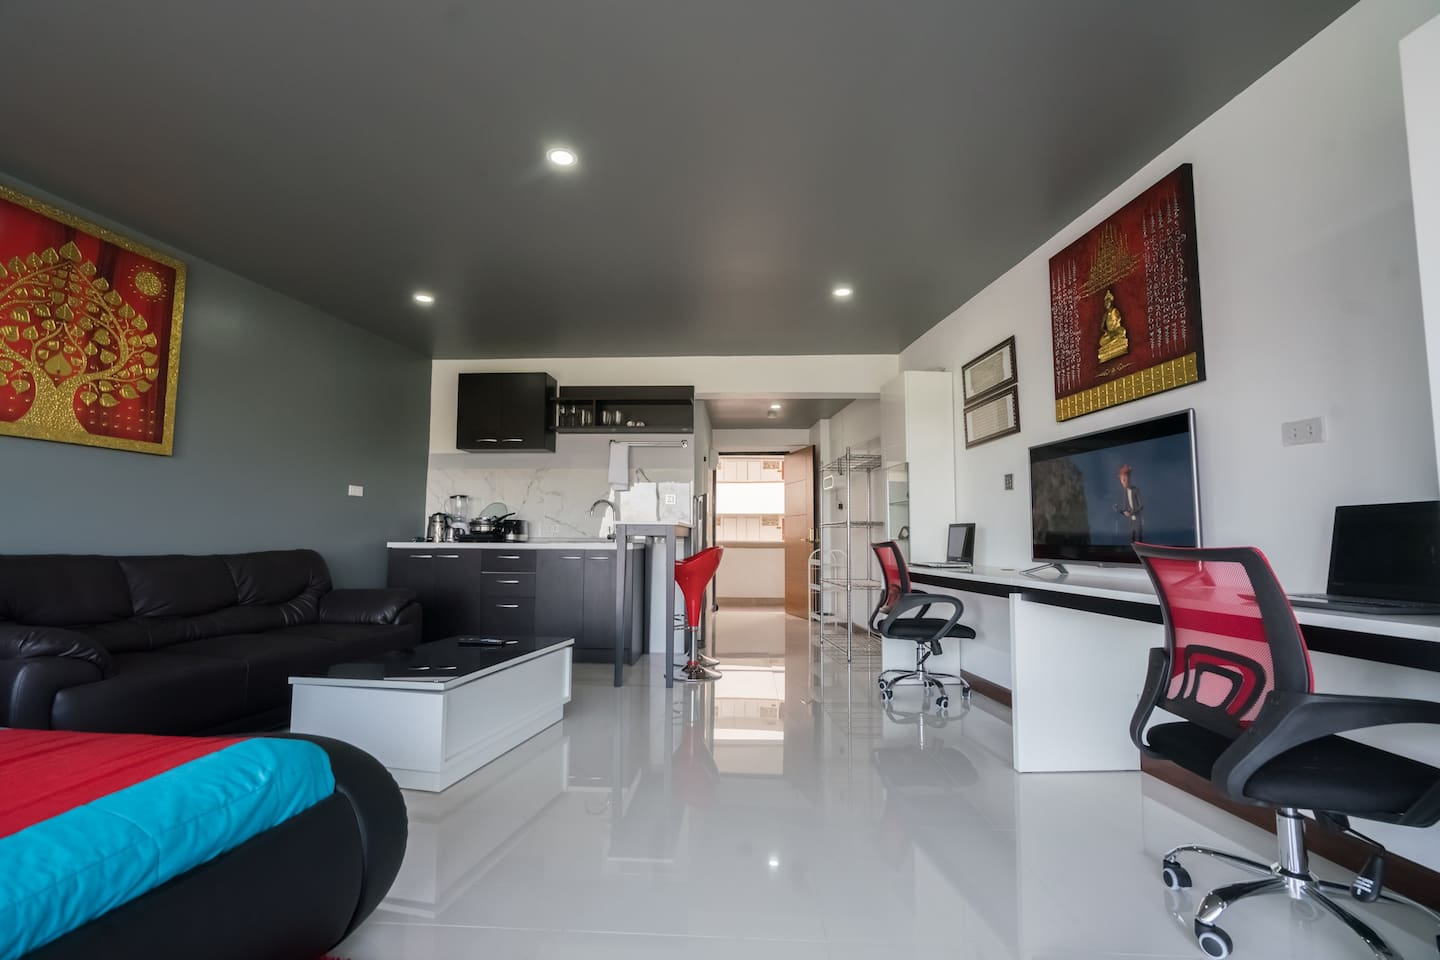 47 Sqm of Space